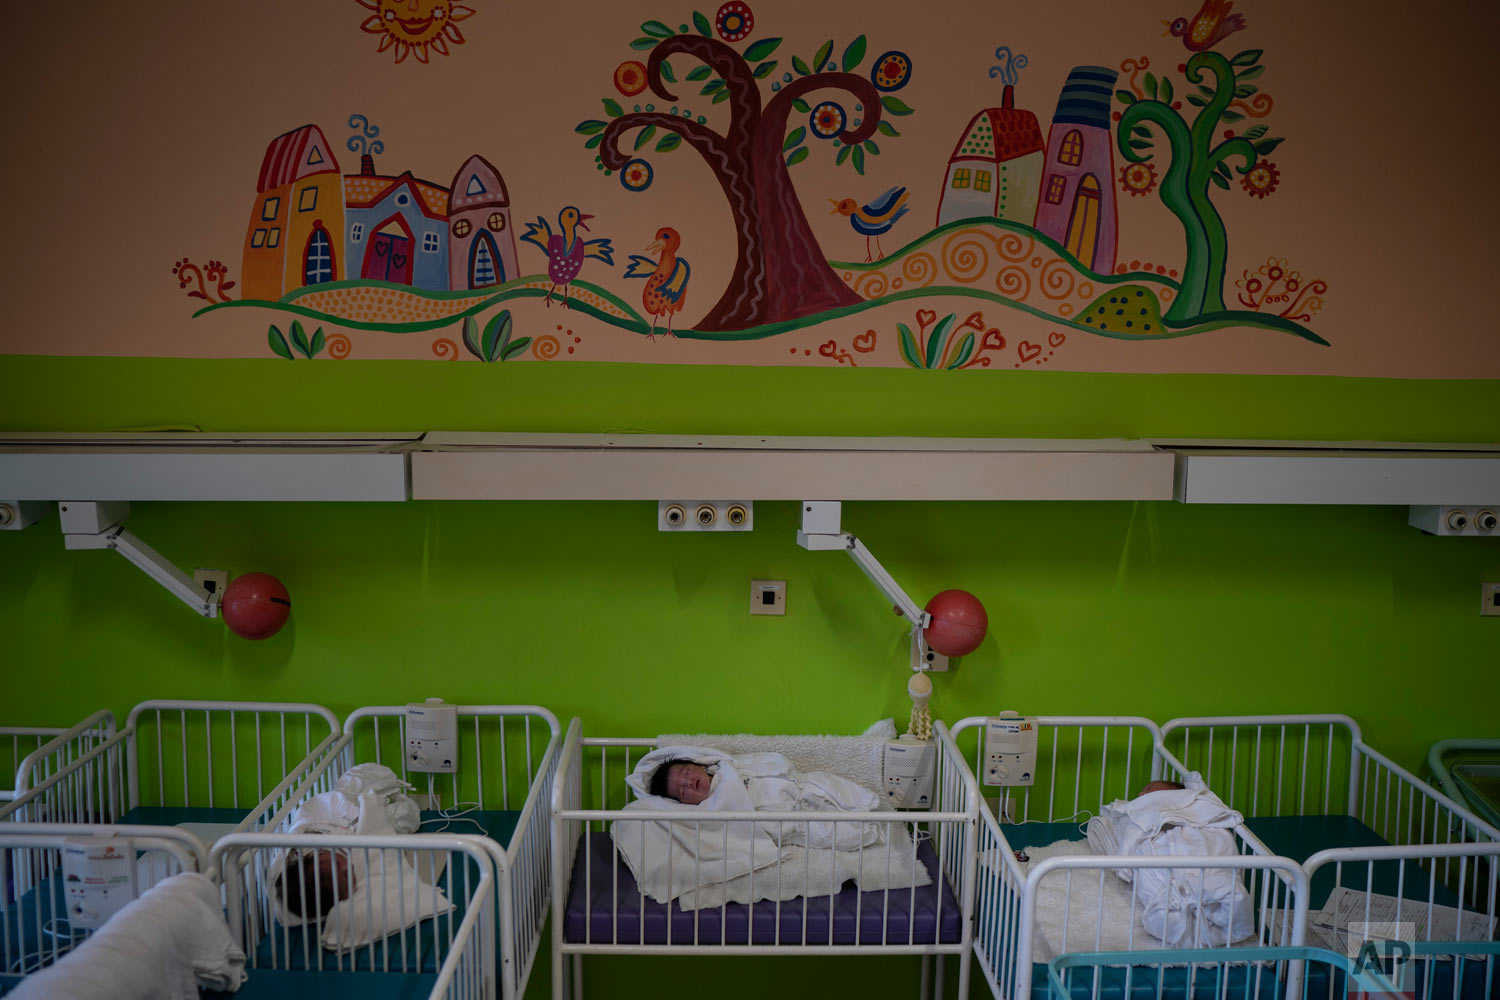 Three babies whose mothers absconded the hospital, rest in their cribs at the Kezmarok hospital on Nov. 16, 2018, in Kezmarok, Slovakia. (AP Photo/Felipe Dana)